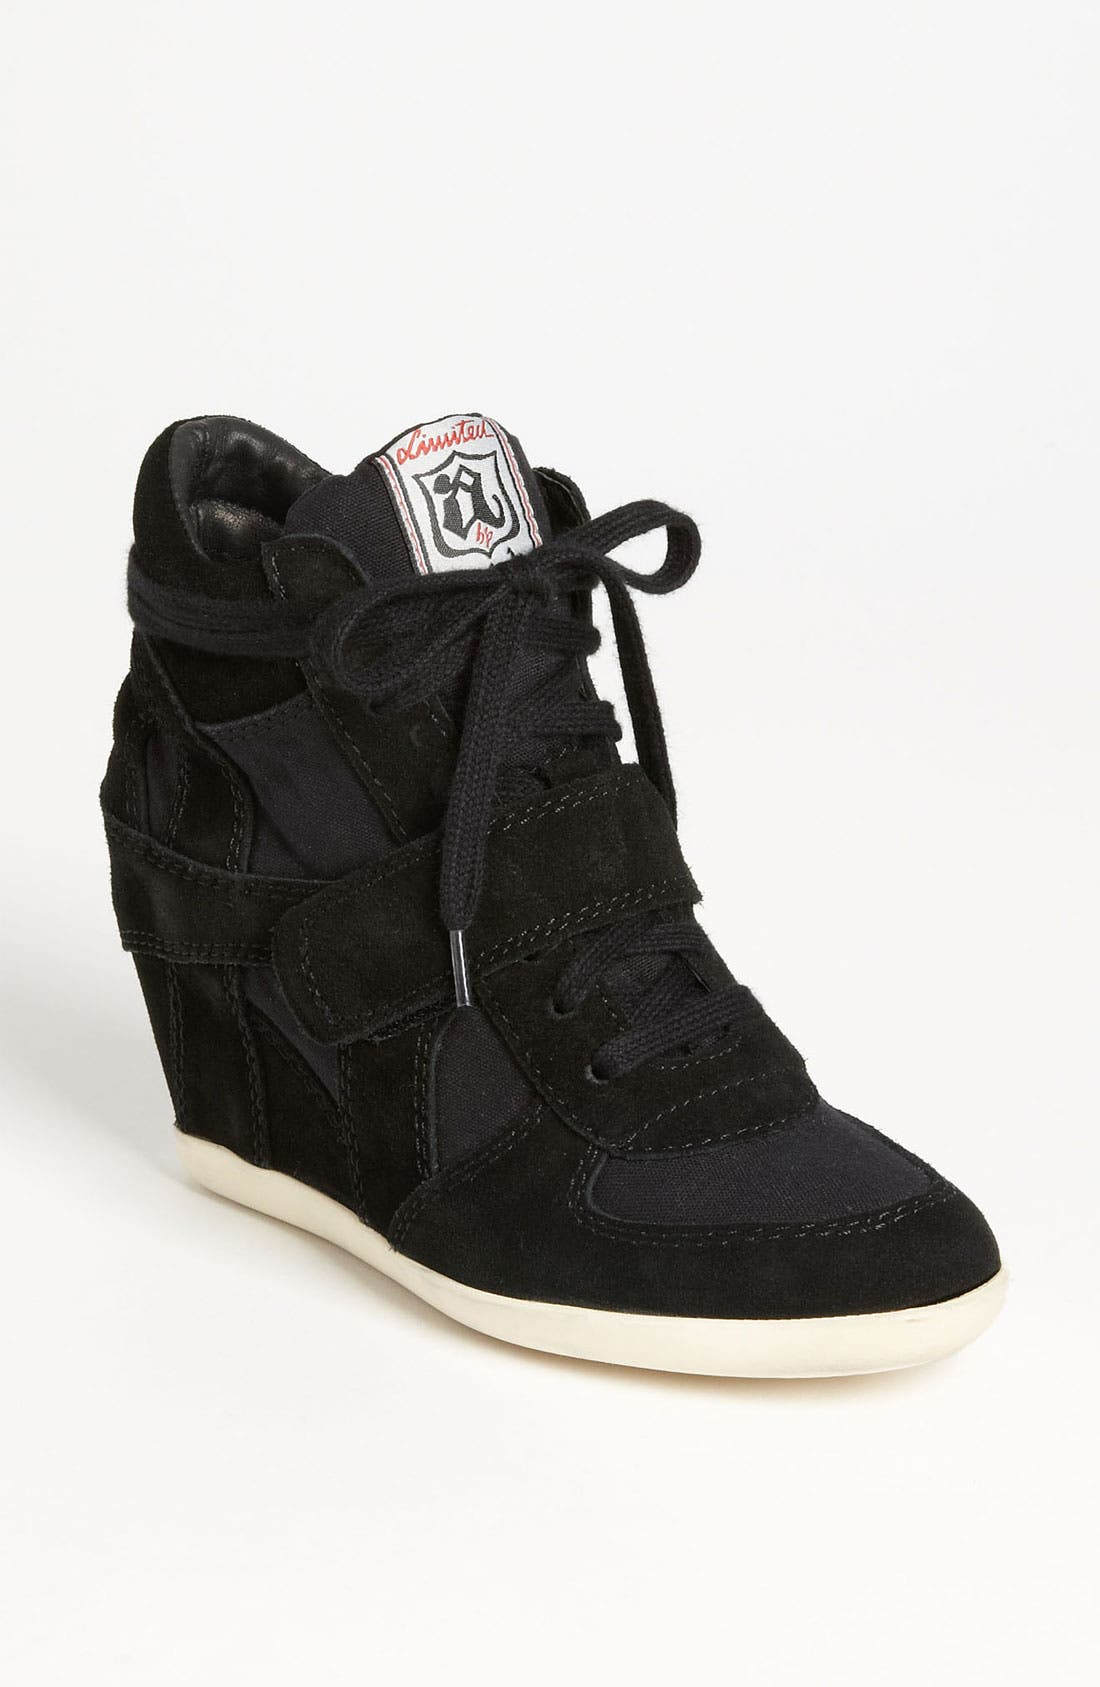 'Bowie' Hidden Wedge Sneaker,                             Main thumbnail 1, color,                             001